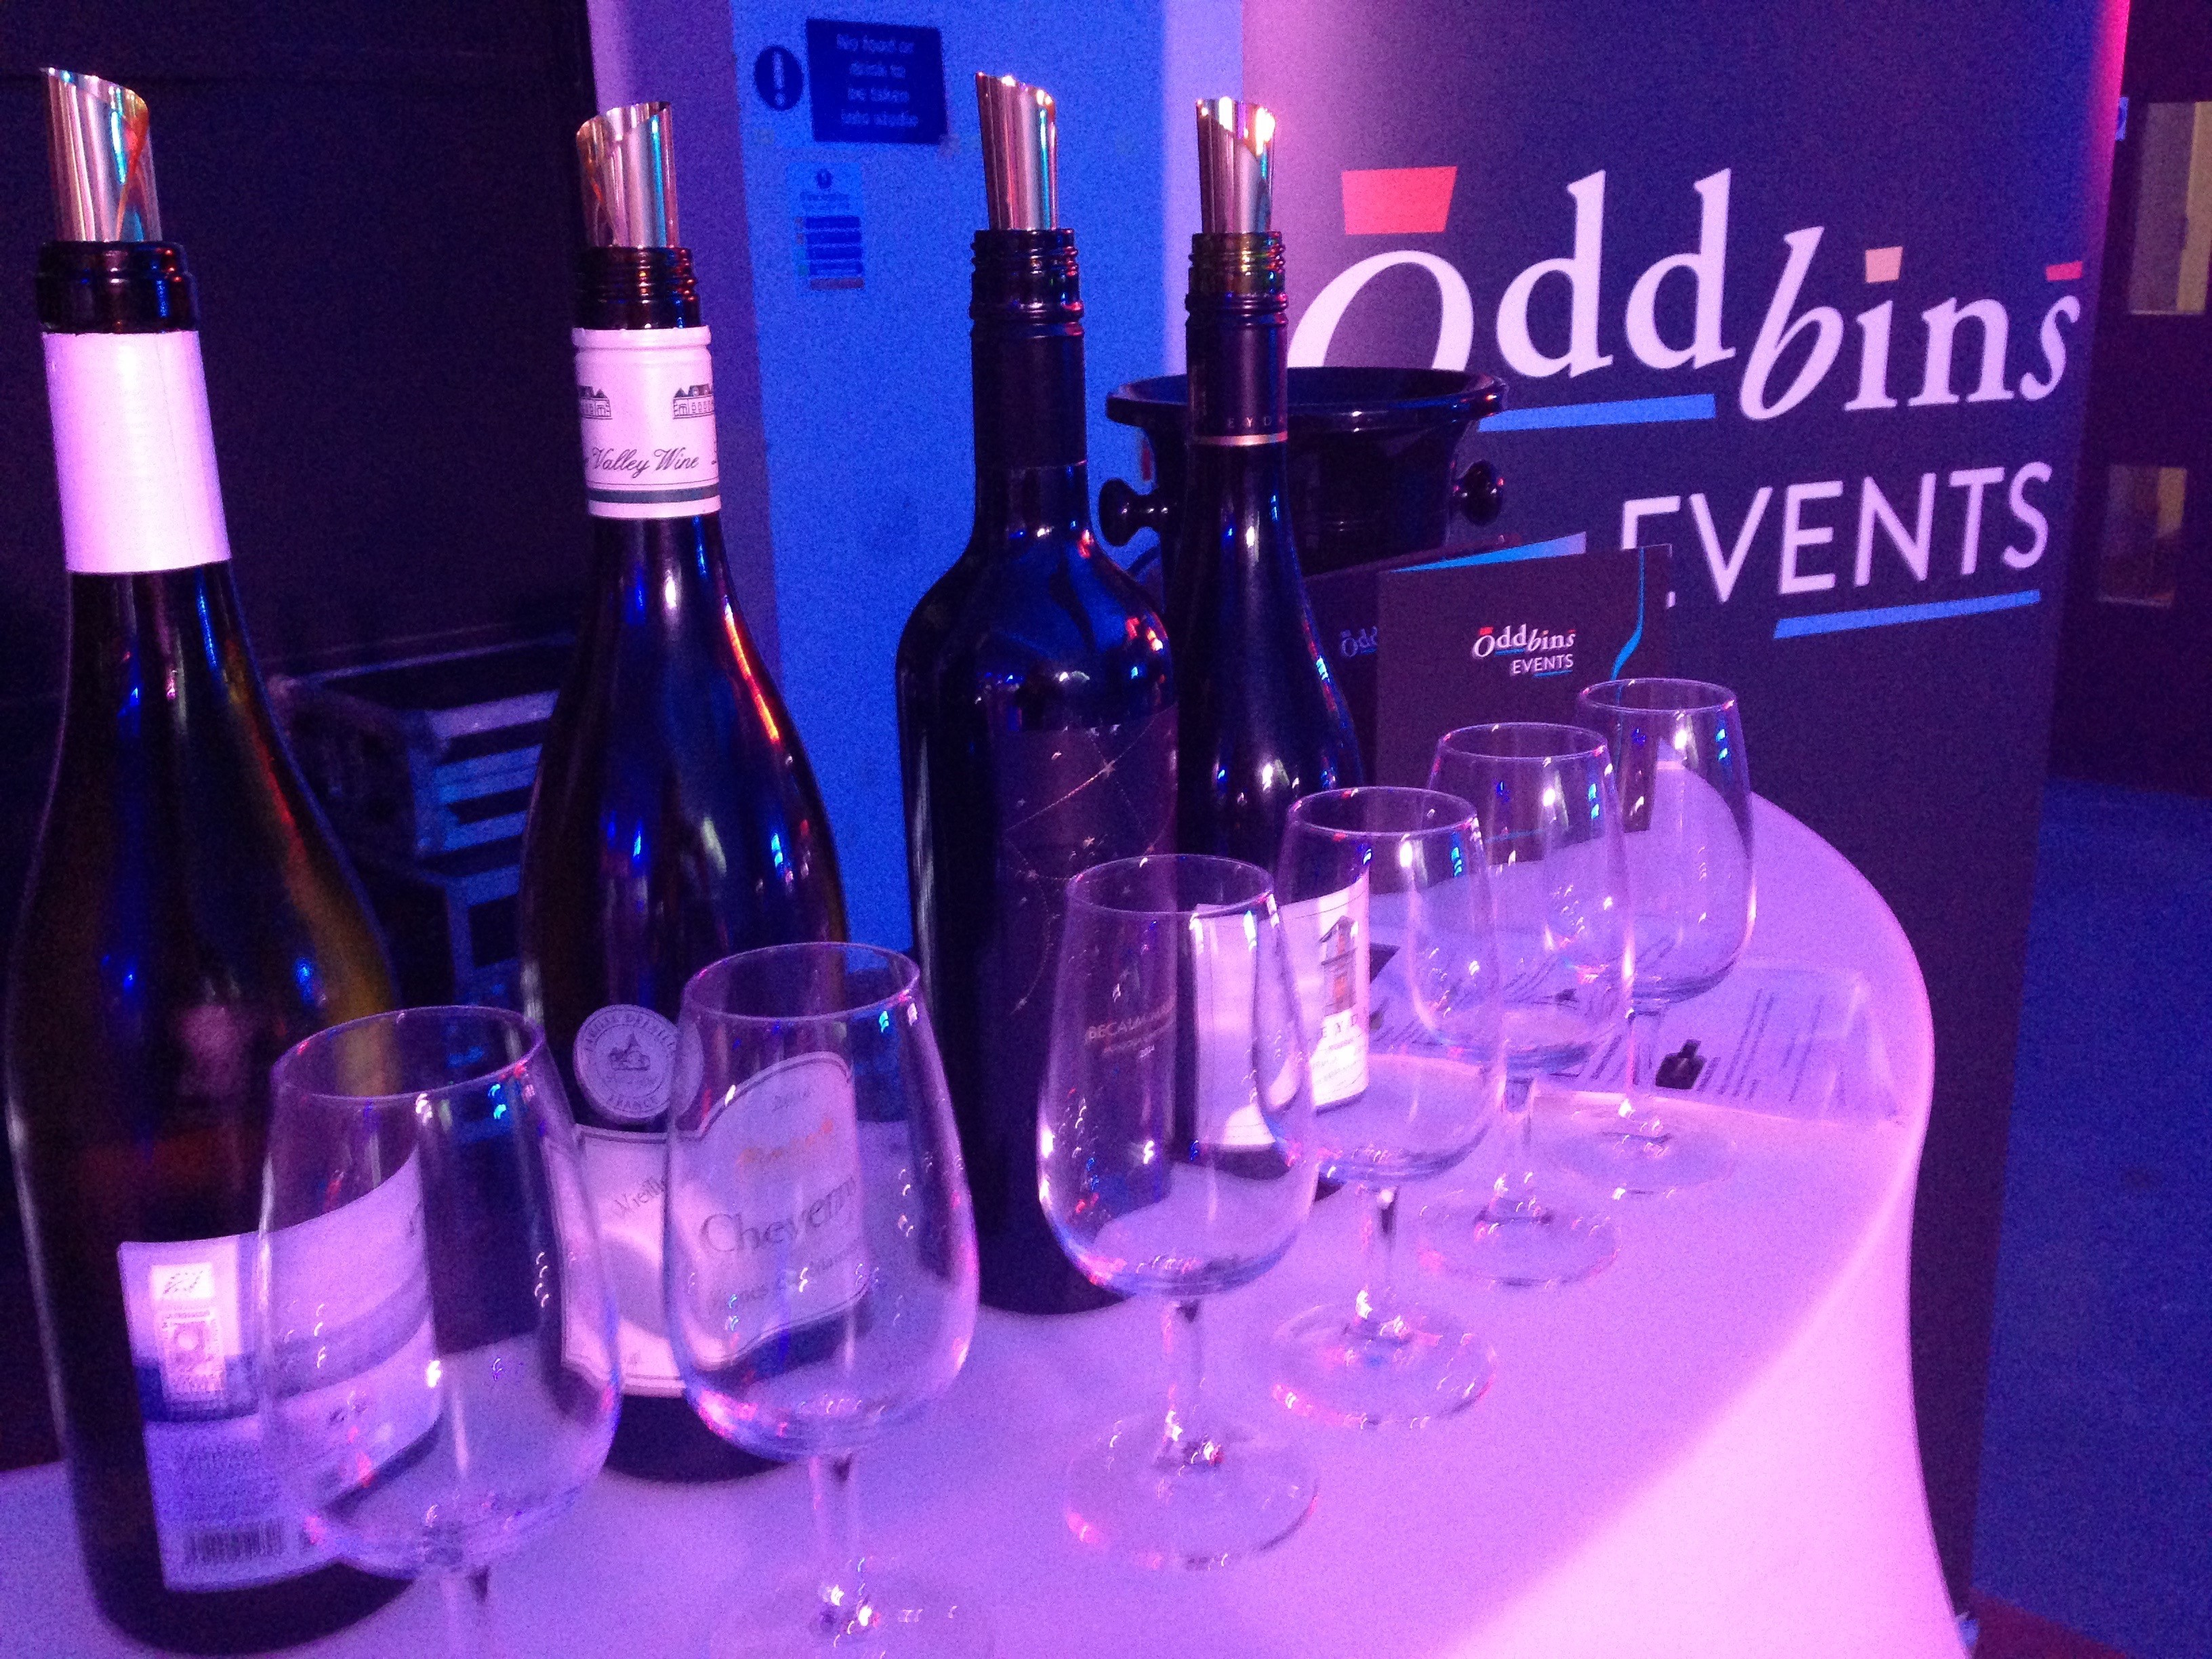 Oddbins Events